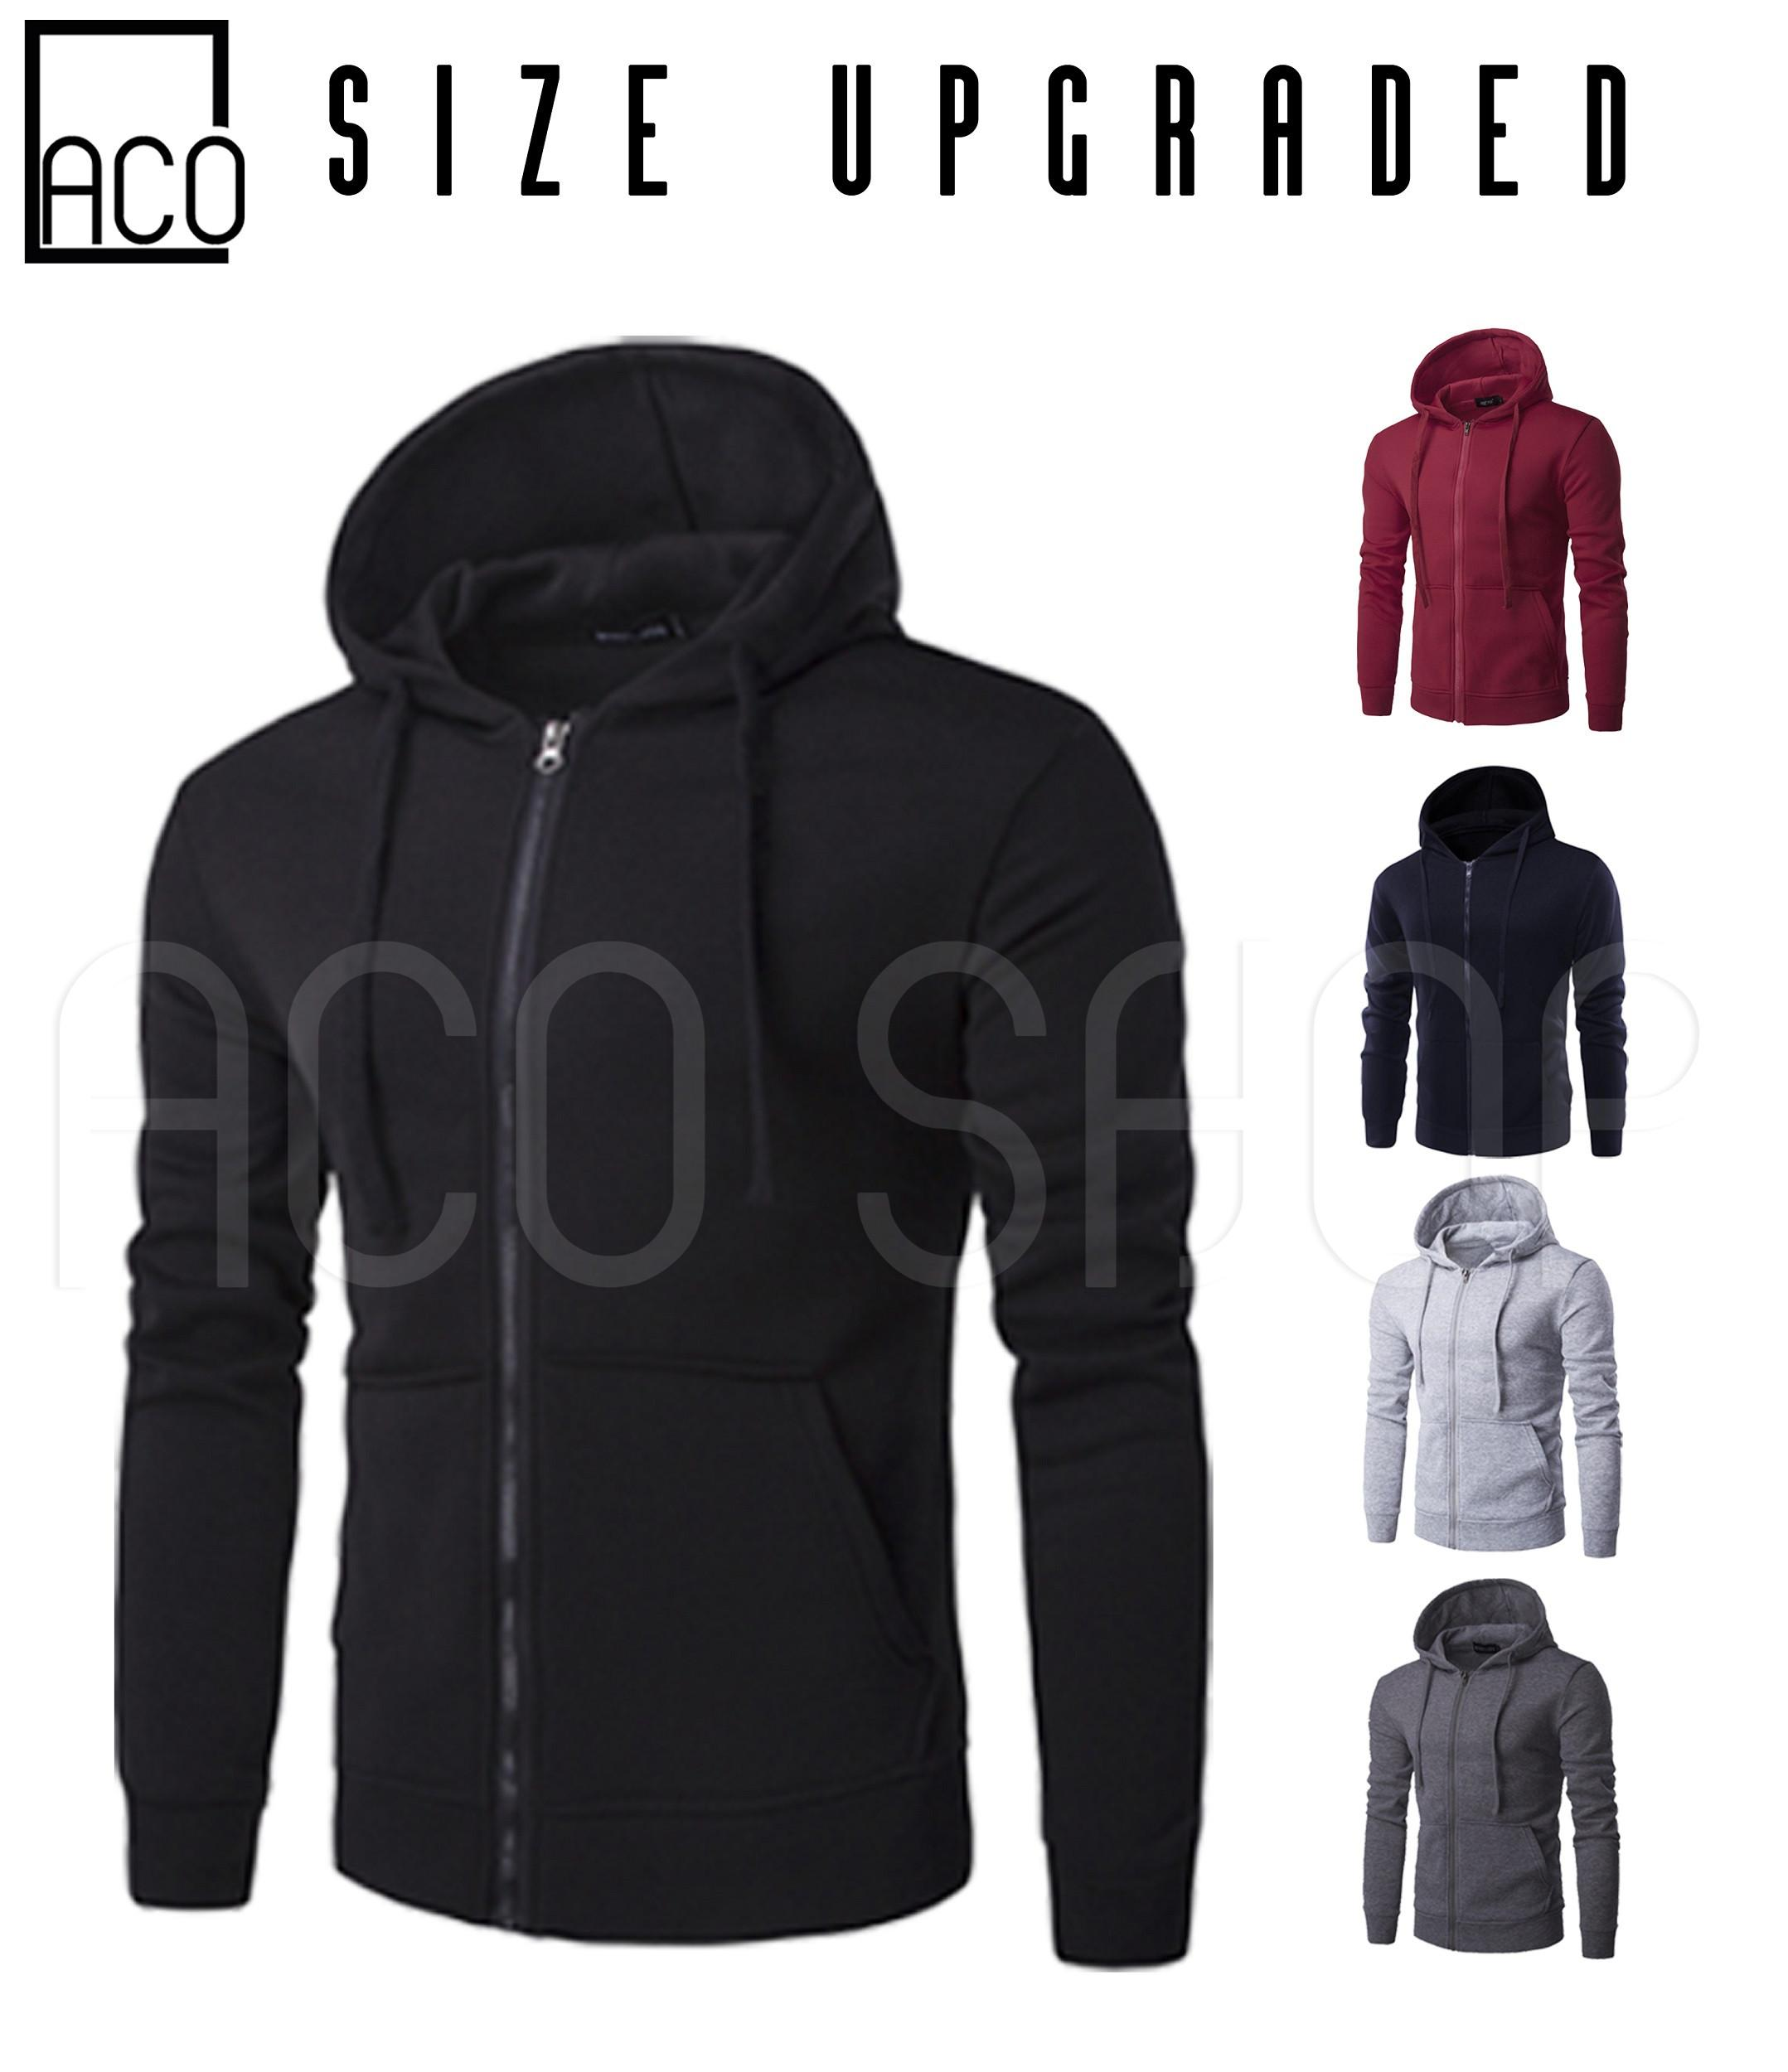 meet 89f55 0ae10 ACO Fashion Mens Jacket with zipper Hoodie Jacket Plain (Size Upgraded)